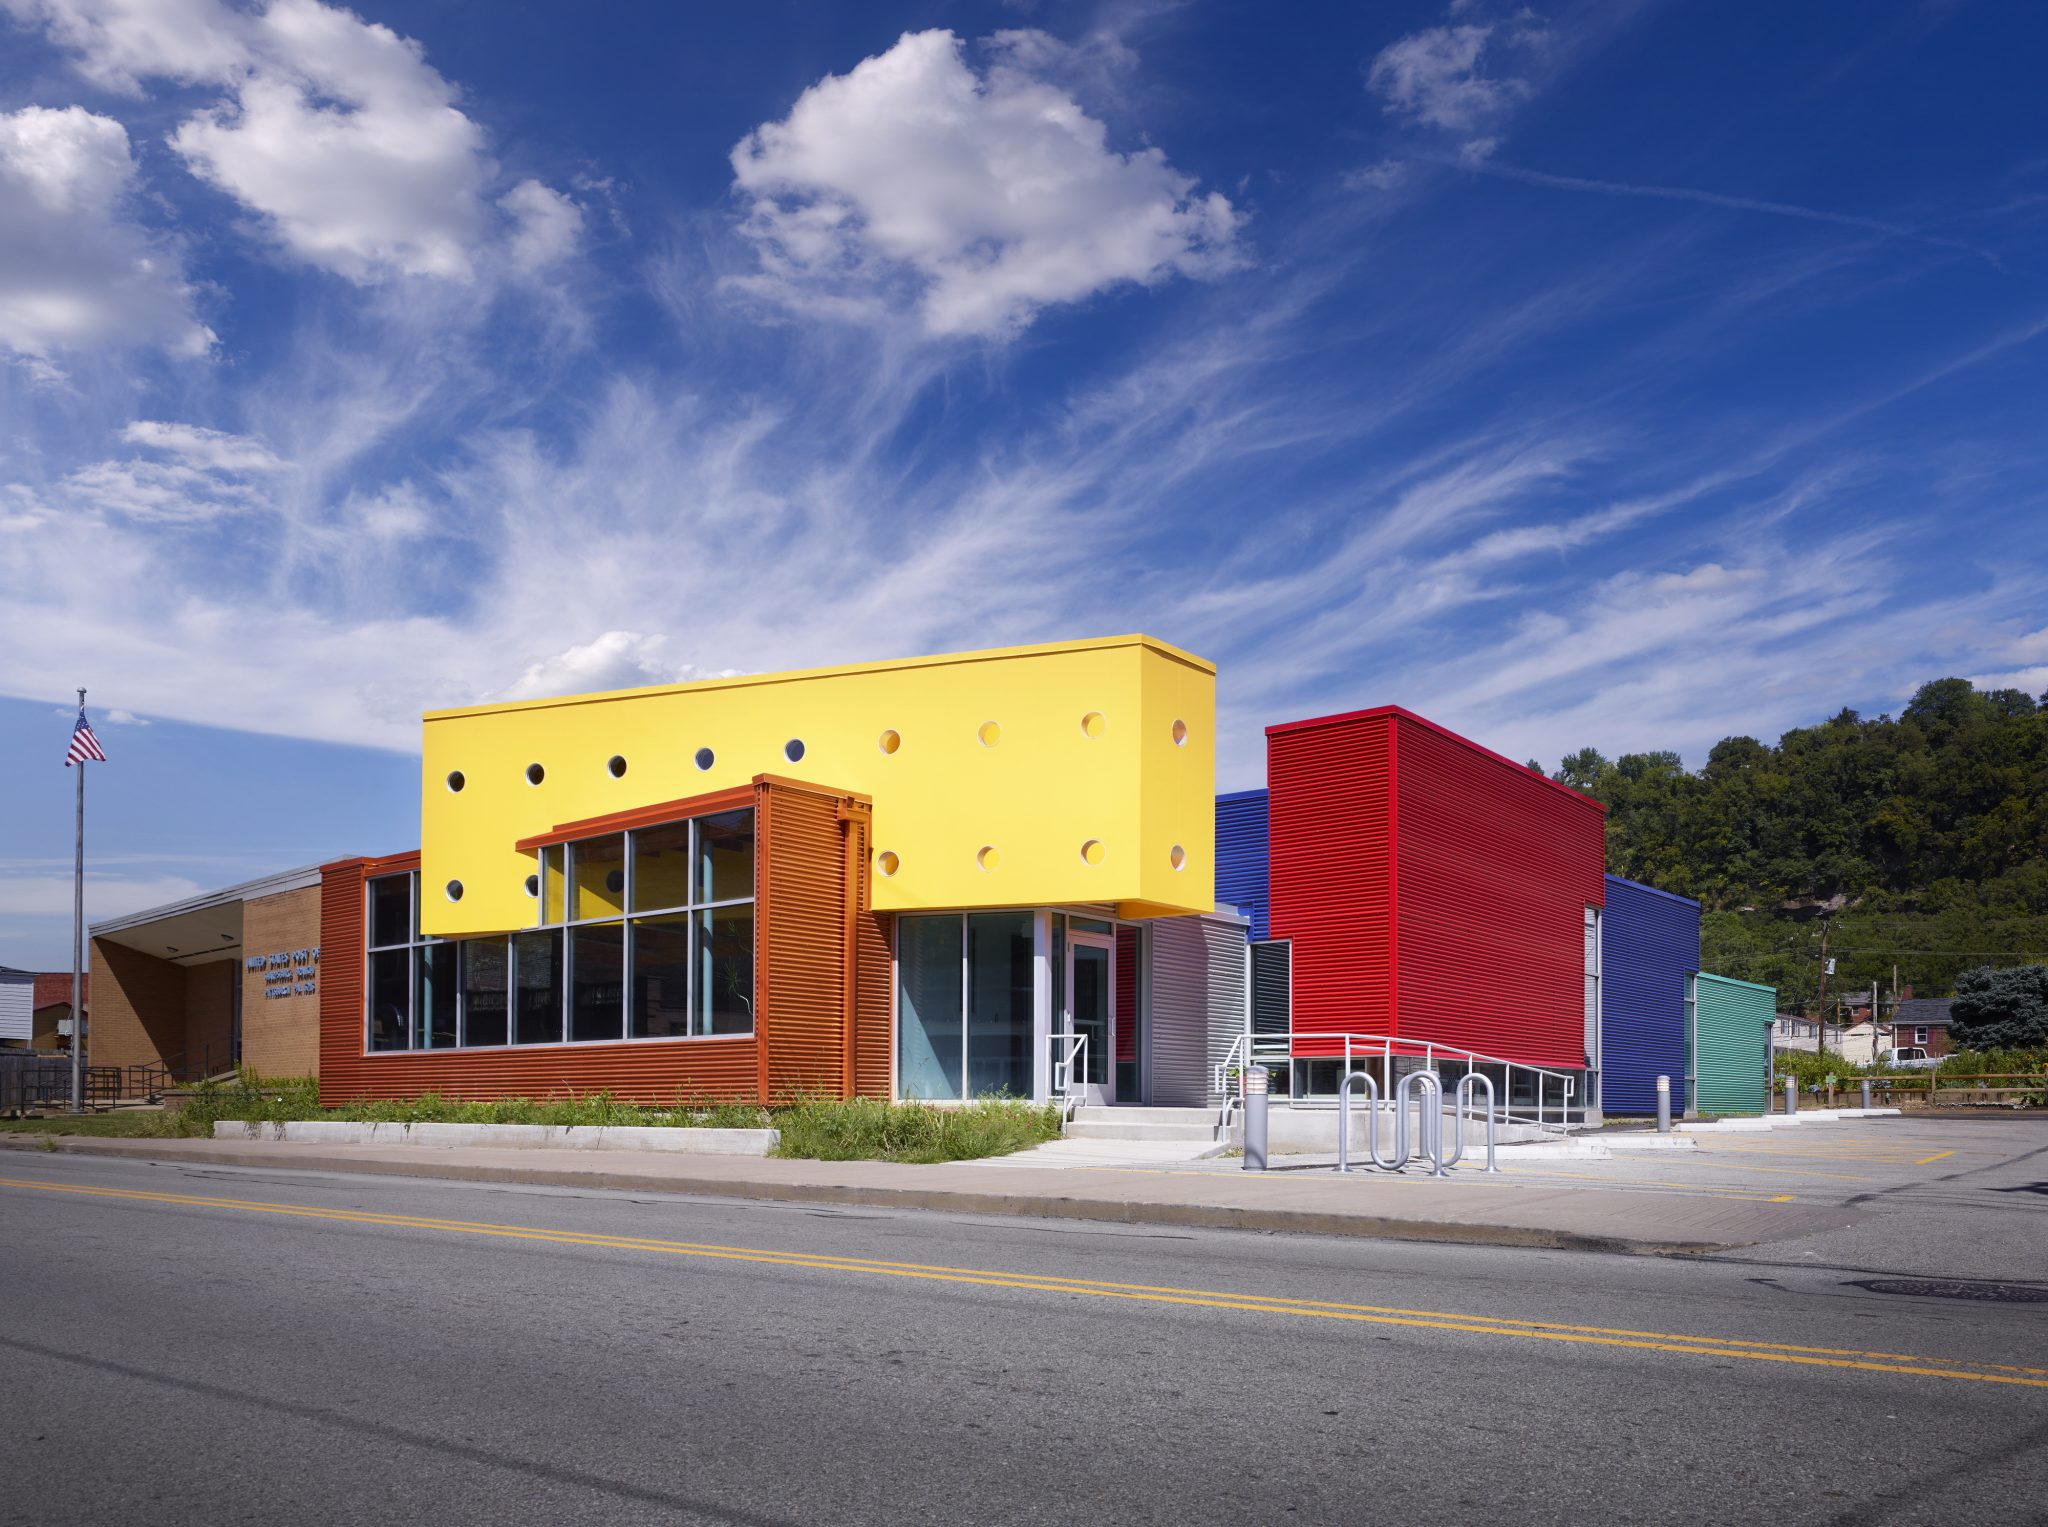 Previously A One Story Concrete Block Building The Sharpsburg Community Library In Pa Is Now Vivid Multi Colored Facility That Has Become